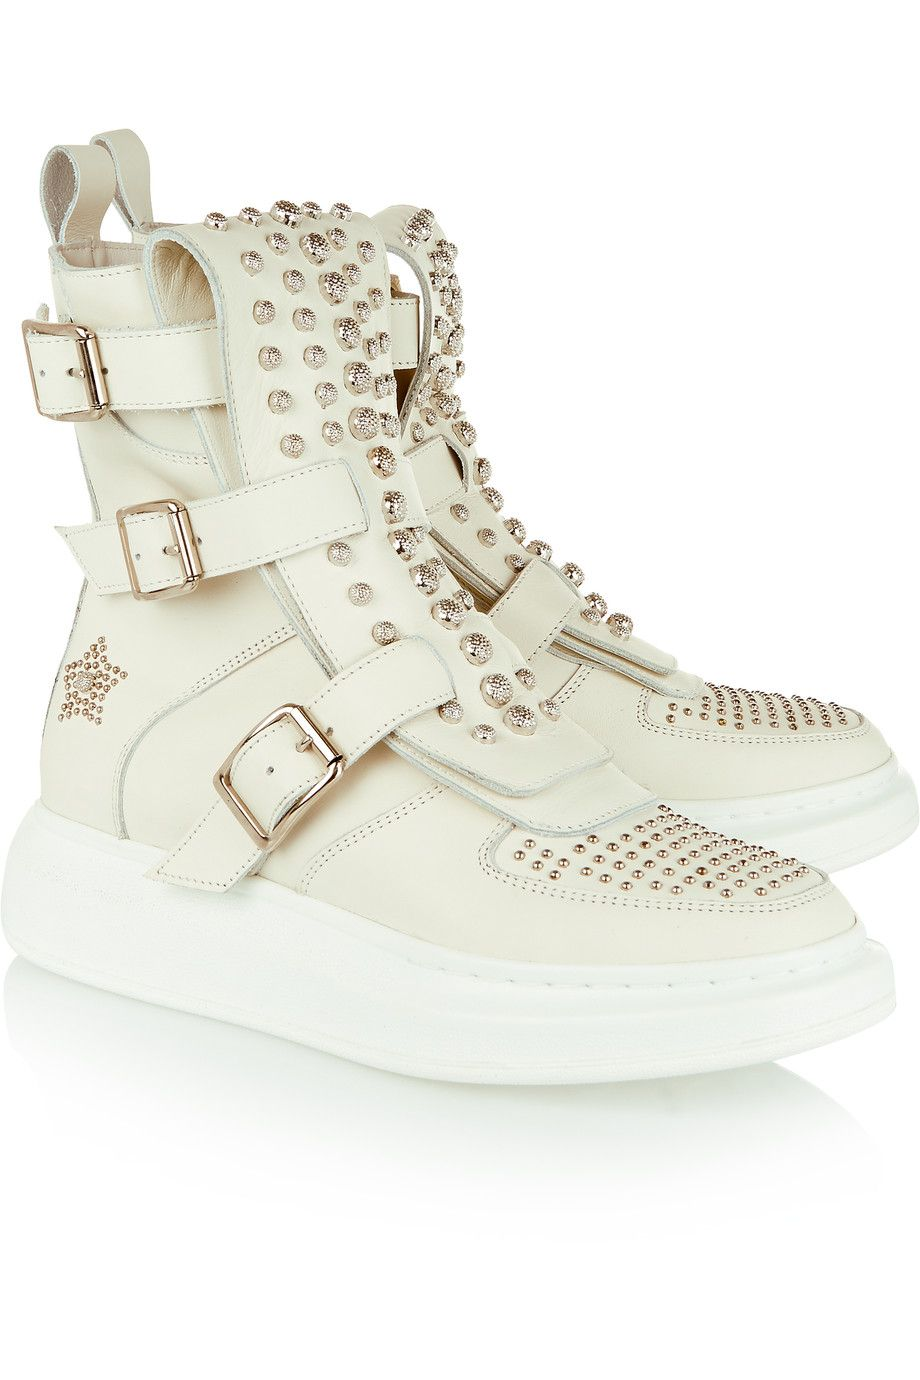 Shop on-sale Alexander McQueen Studded leather exaggerated-sole high-top  sneakers. Browse other discount designer Sneakers   more on The Most  Fashionable ... 953de8a72cb8